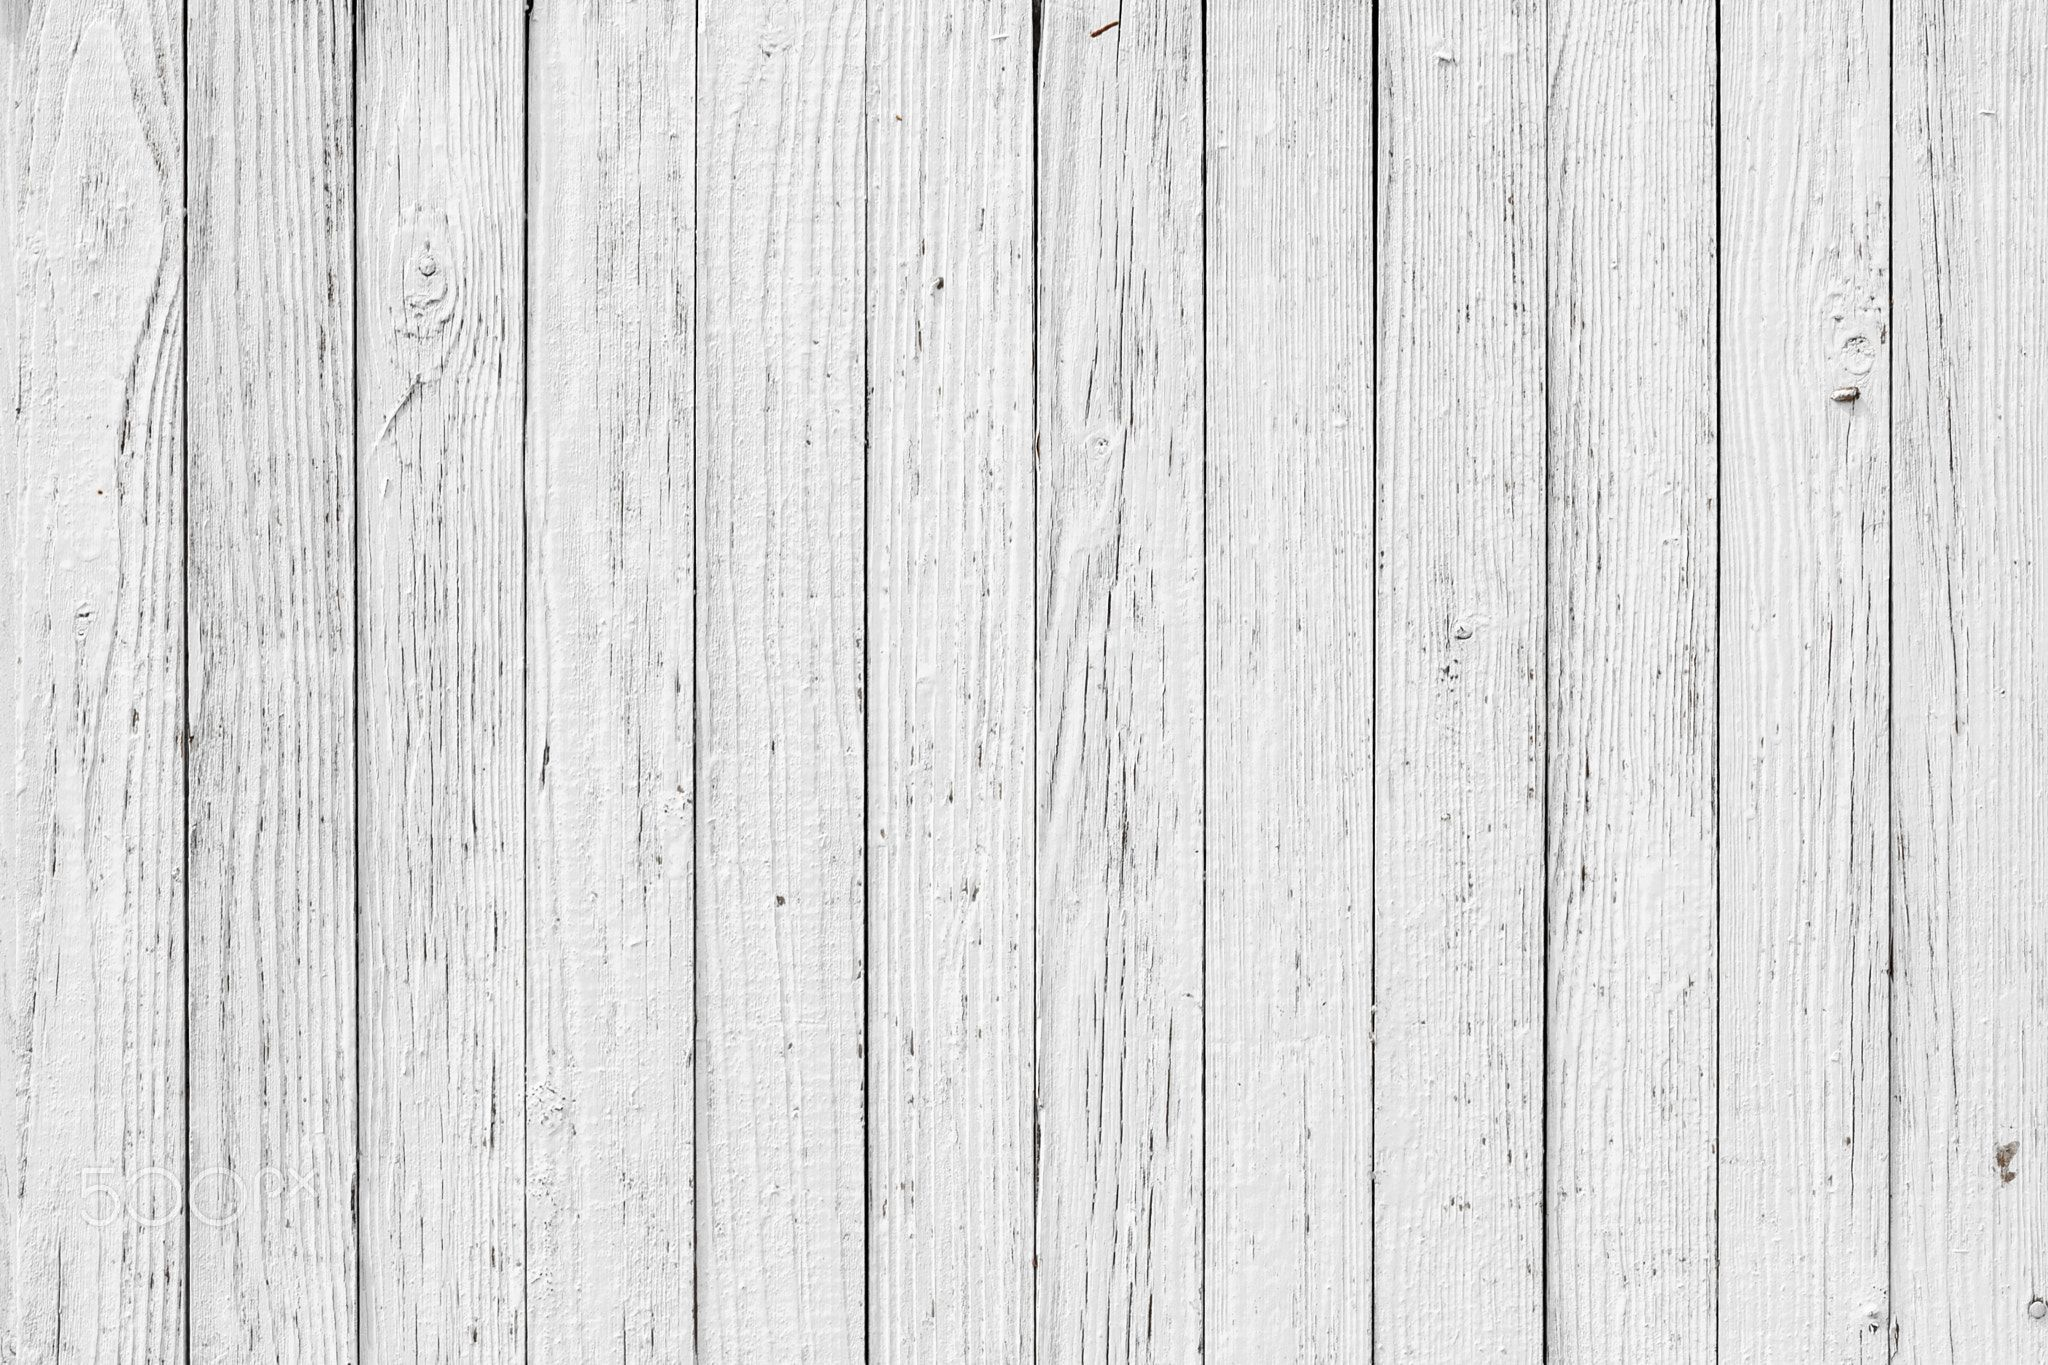 white wood texture background - It is a conceptual or metaphor wall banner, grunge, material, aged, rust or construction. Background of light wooden planks #woodtexturebackground white wood texture background - It is a conceptual or metaphor wall banner, grunge, material, aged, rust or construction. Background of light wooden planks #woodtexturebackground